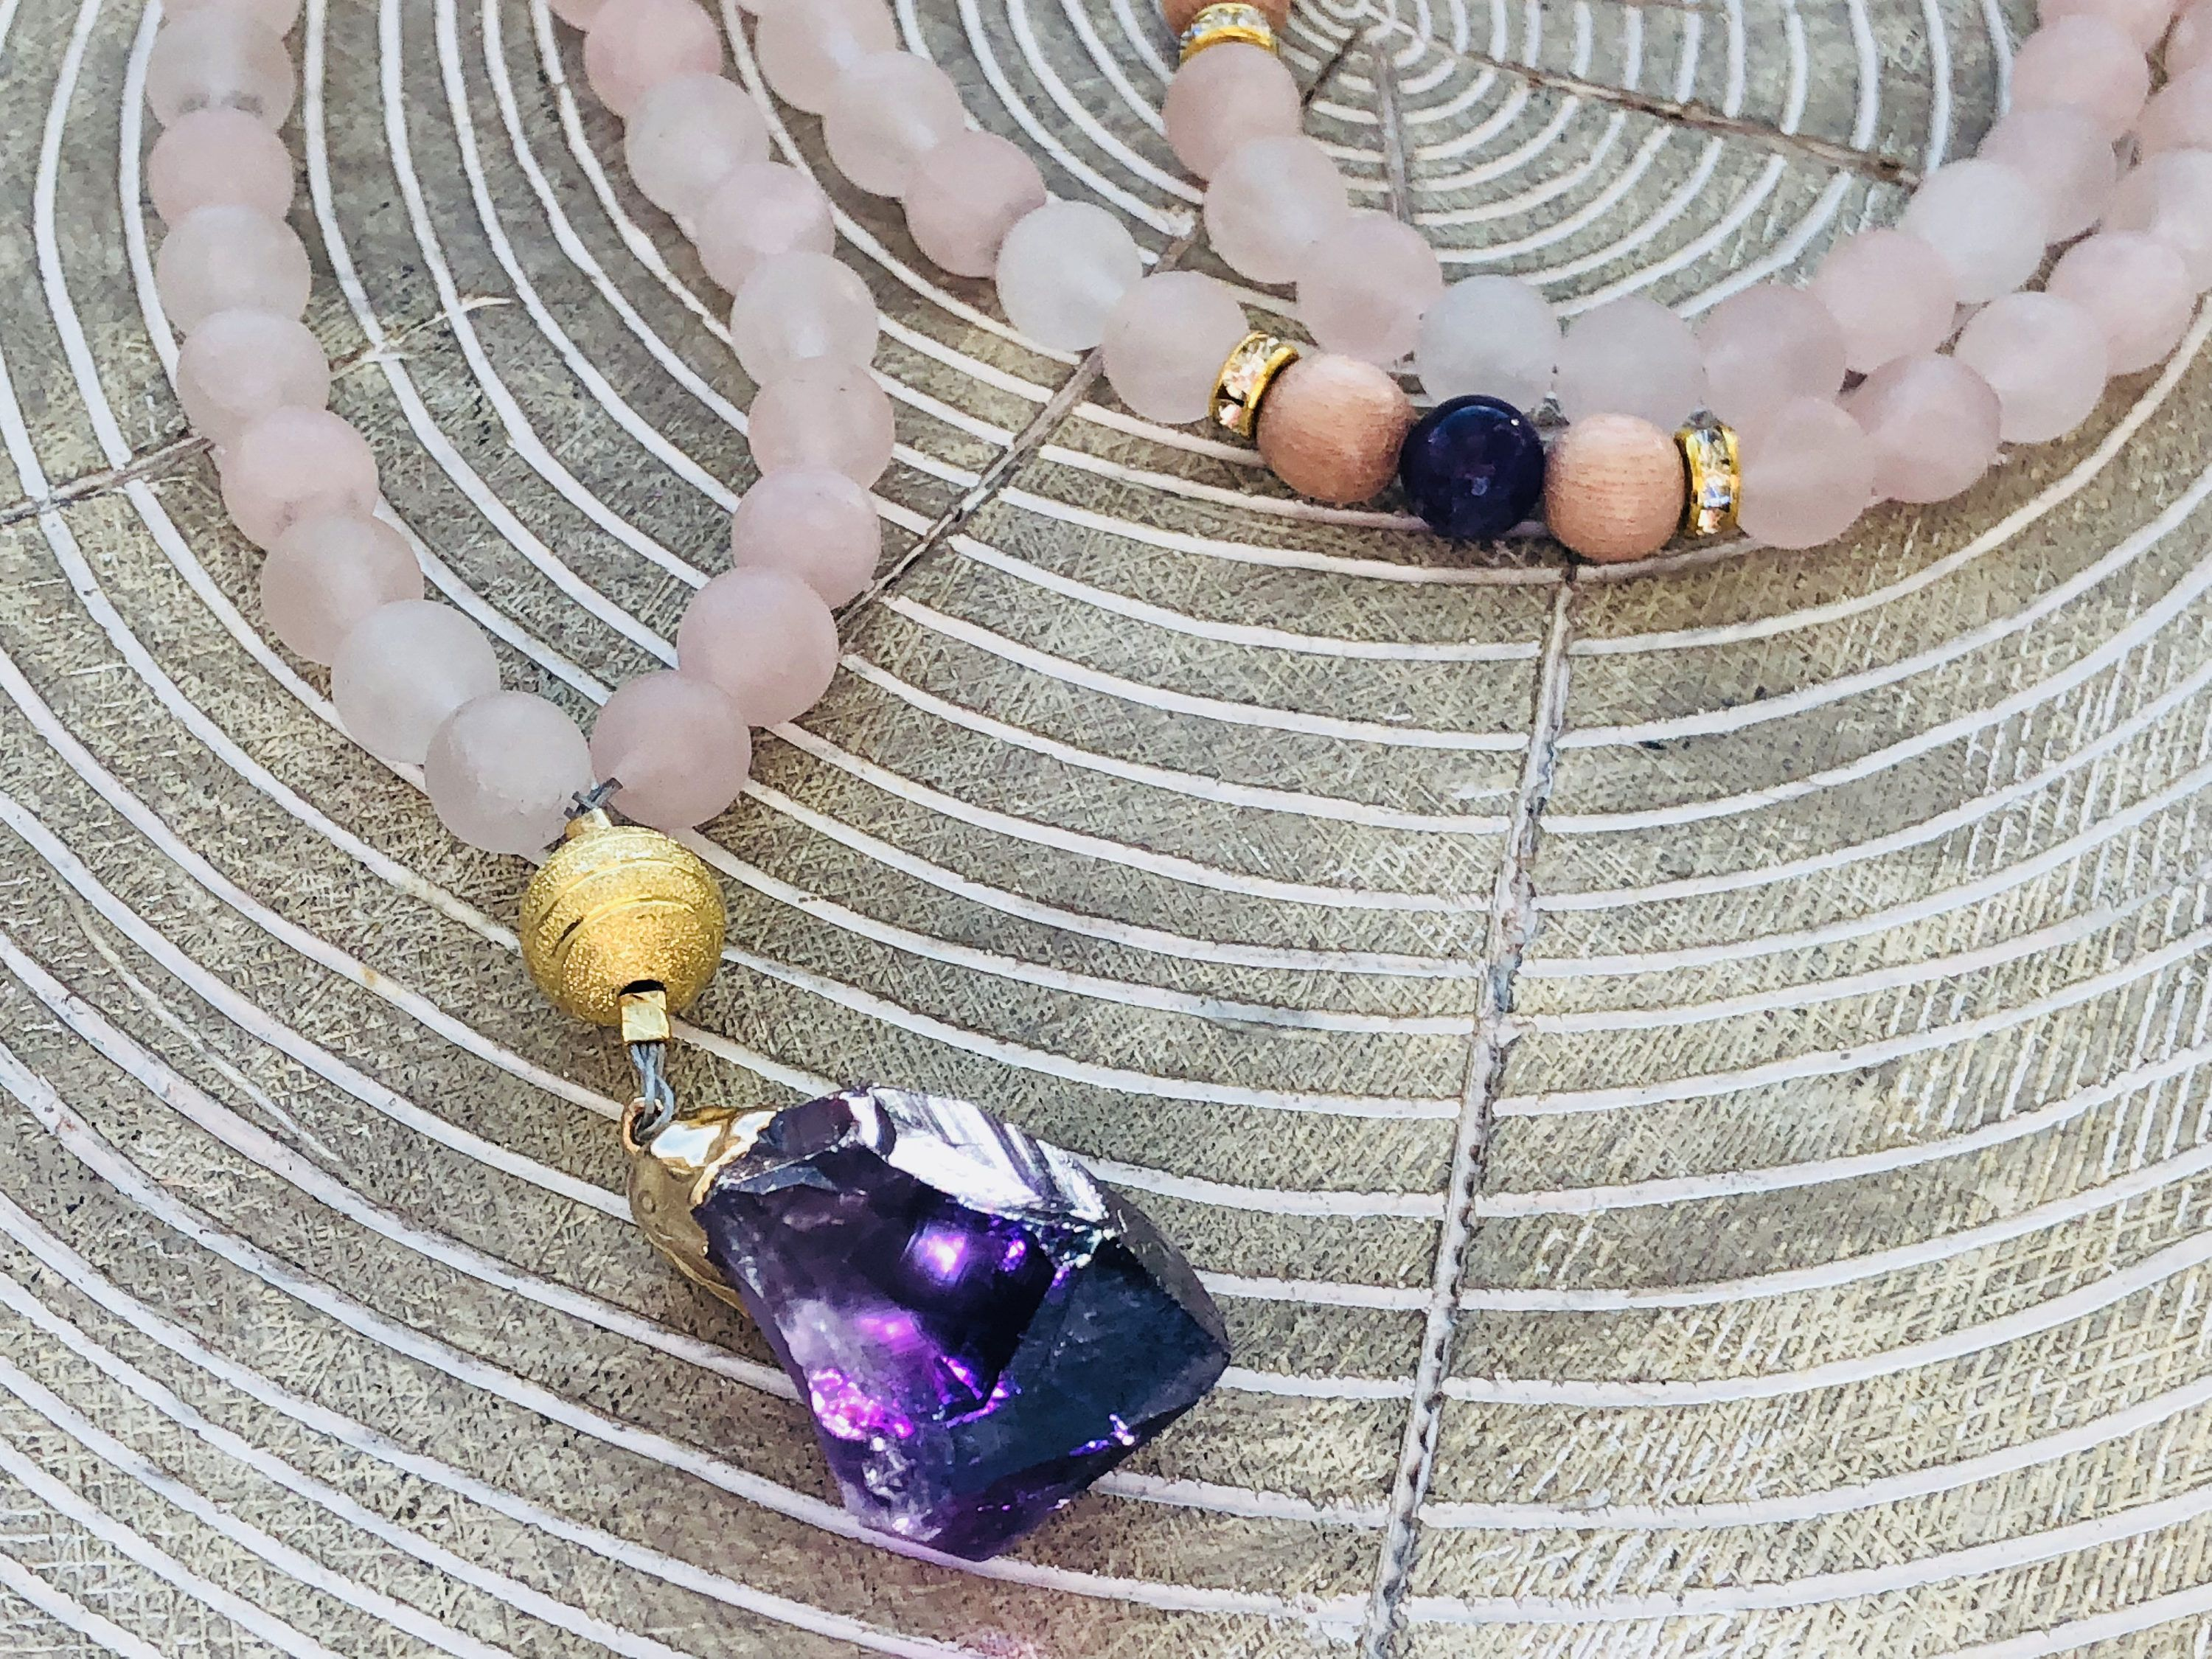 Matte rose quartz amethyst and wood diffuser mala necklace raw matte rose quartz amethyst and wood diffuser mala necklace raw amethyst pendant http aloadofball Image collections